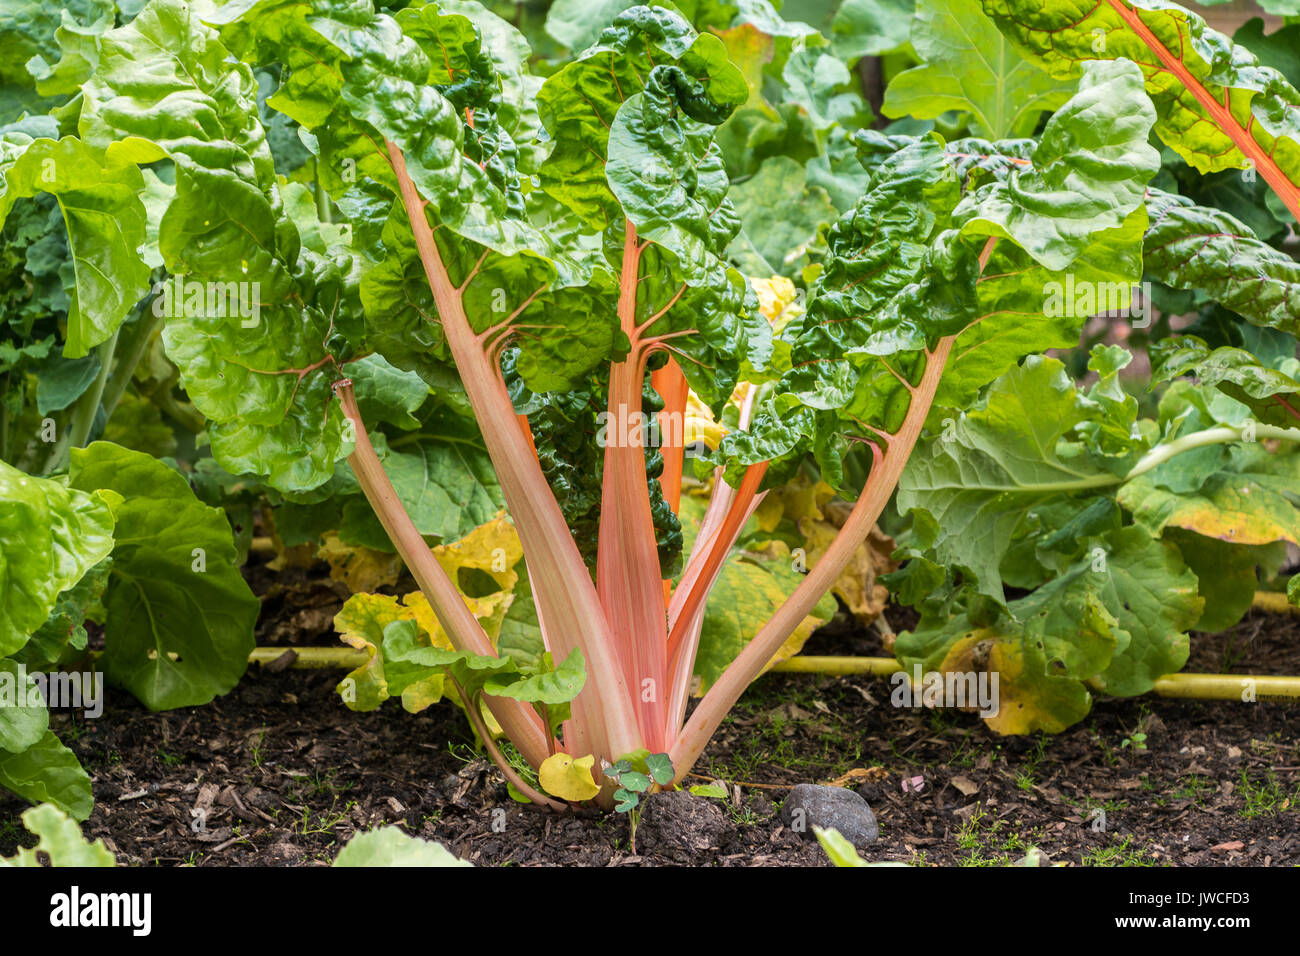 Rainbow Chard Plants Growing In The Ground Stock Photo Alamy